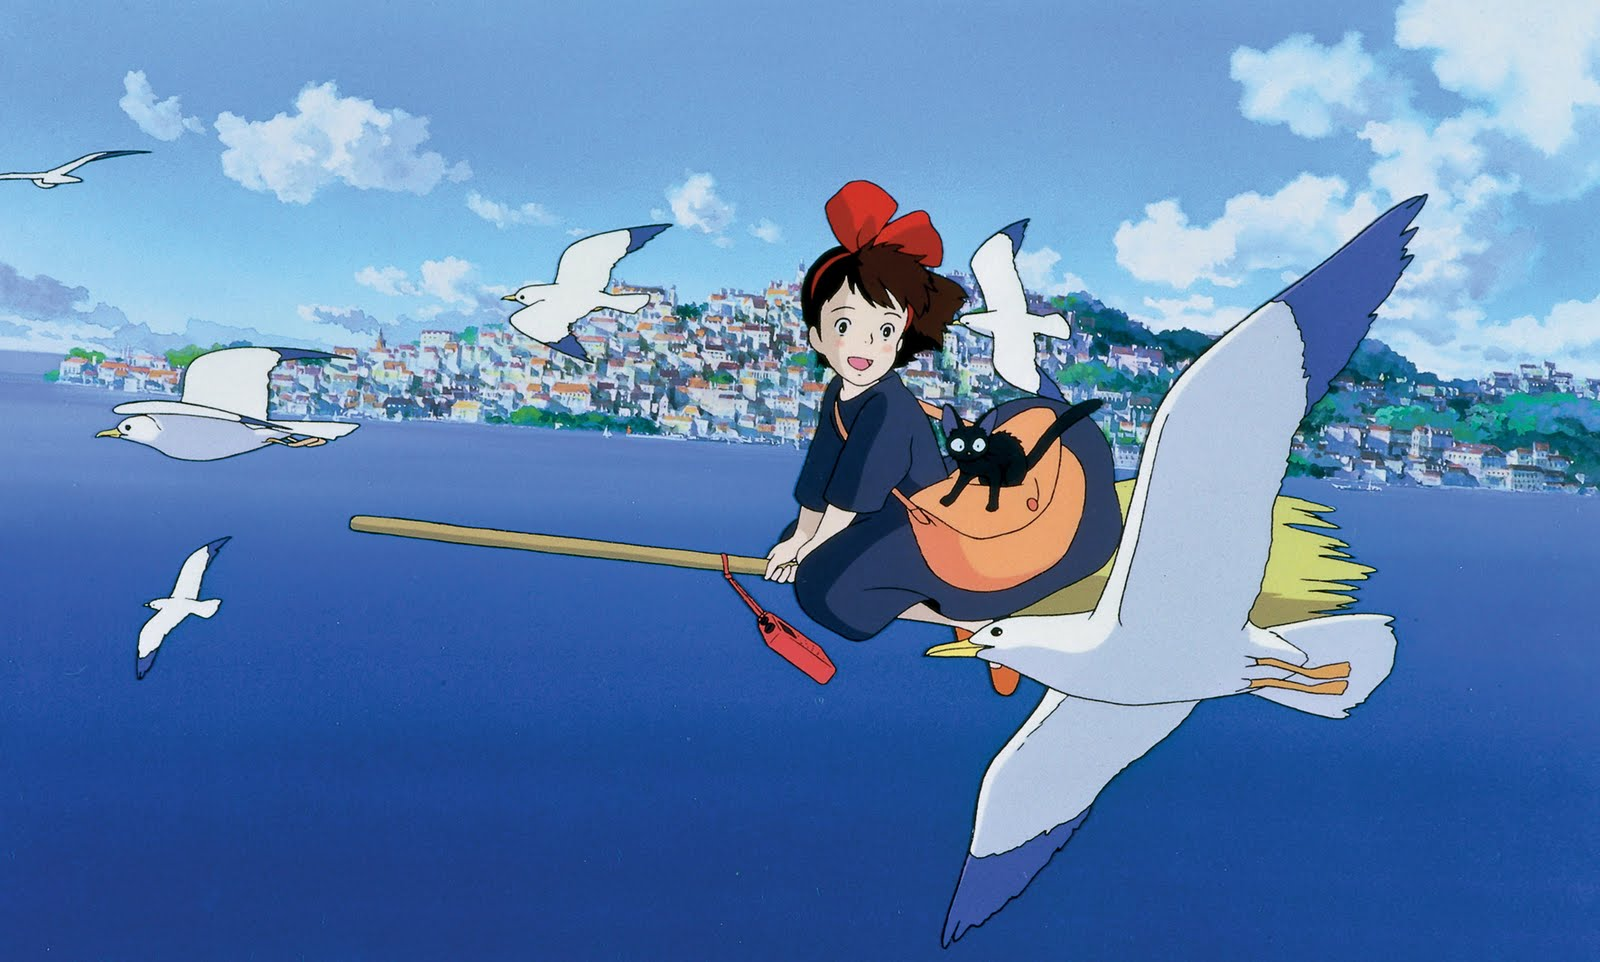 The 20 Best Japanese Animated Movies of All Time